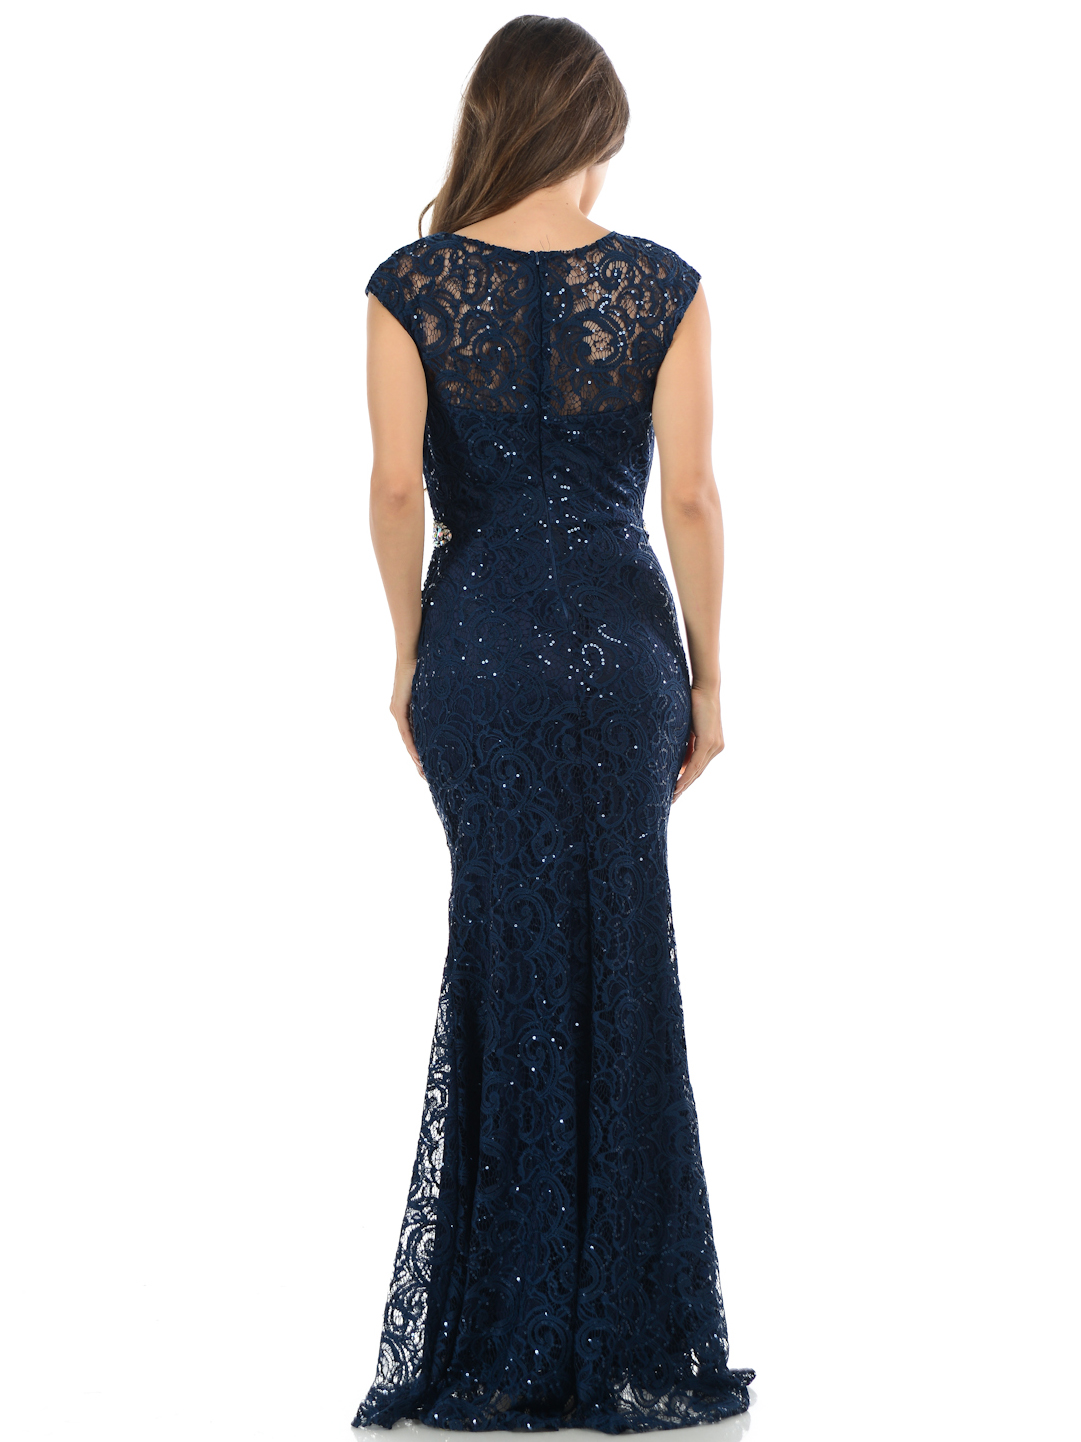 Cap Sleeves Lace Overlay Long Evening Dress Sung